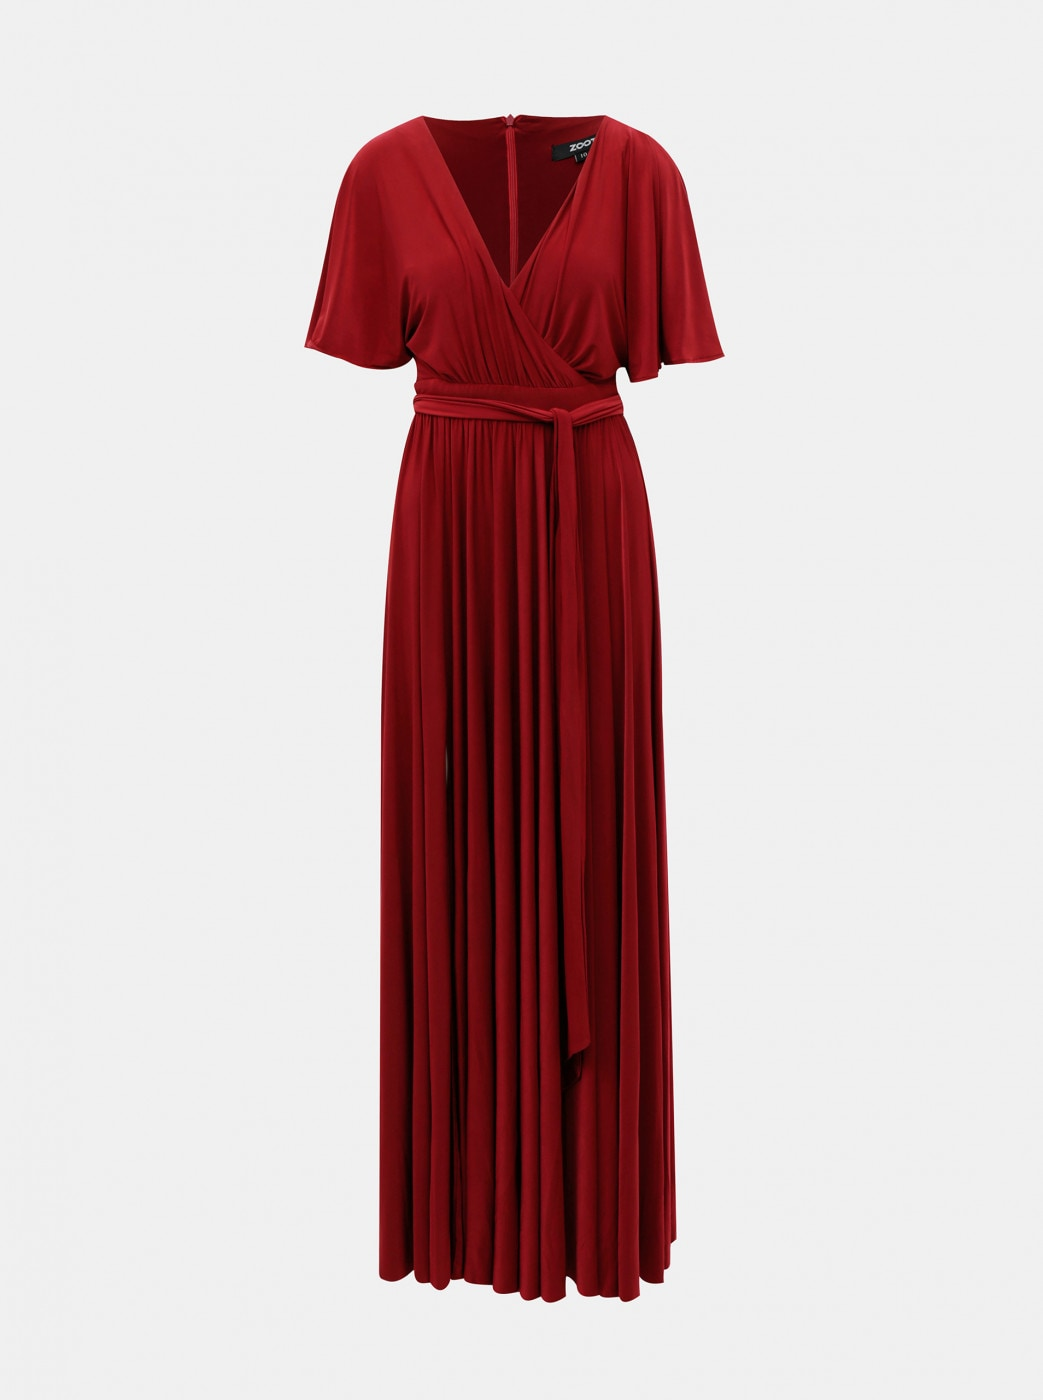 Burgundy maxi dress with zoot slit